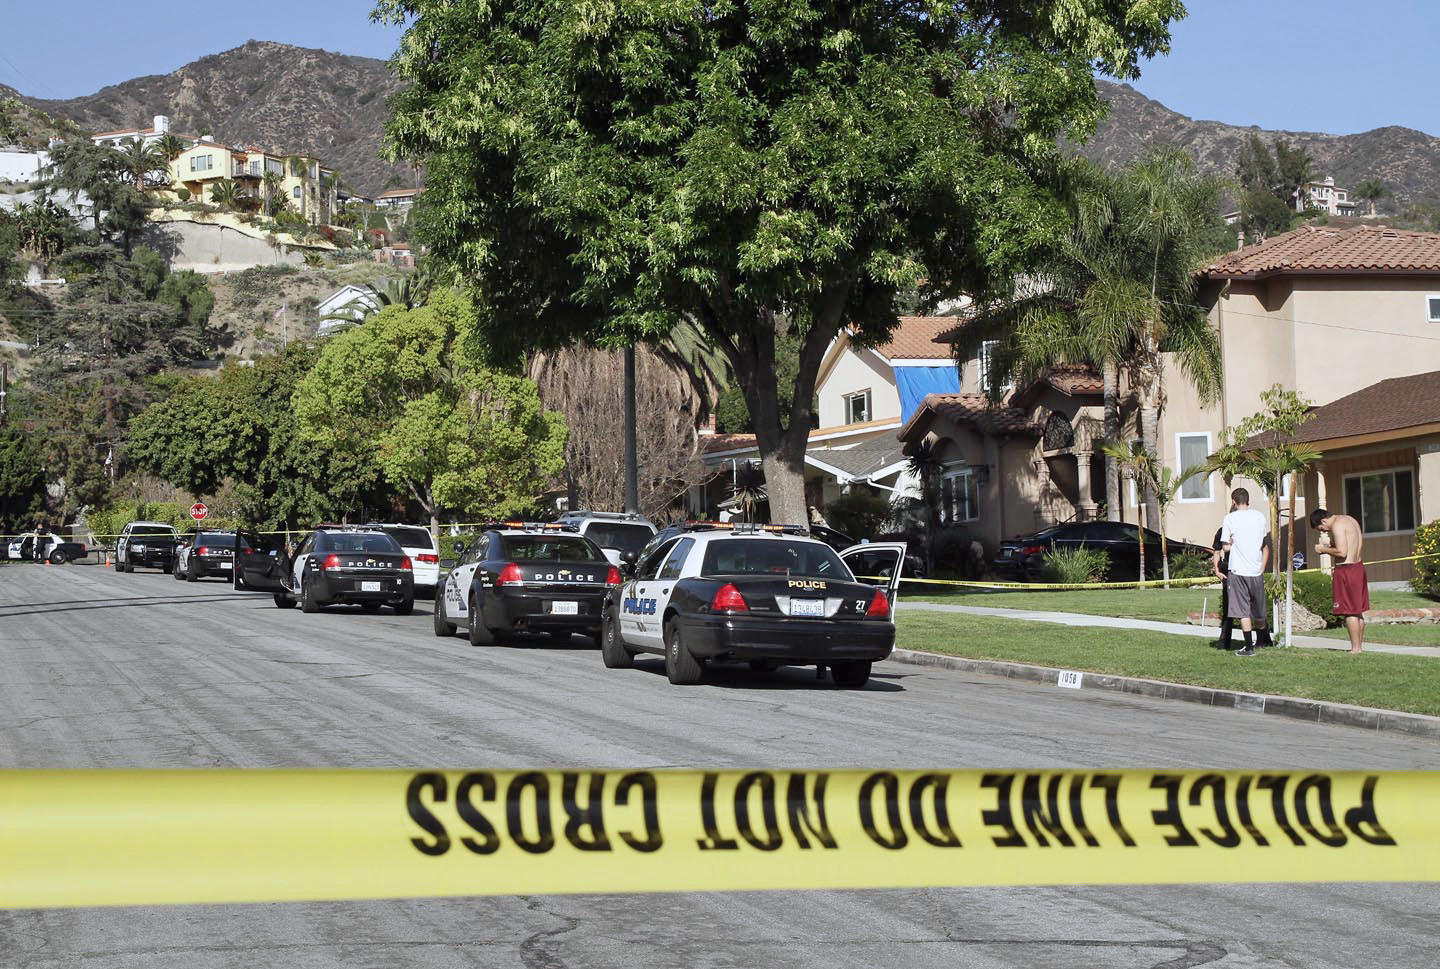 Two men were hospitalized with serious injuries following a stabbing incident in Burbank's hillside neighborhood on Saturday, March 15, 2014. Police investigate the 1100 Block of Angeleno Avenue.